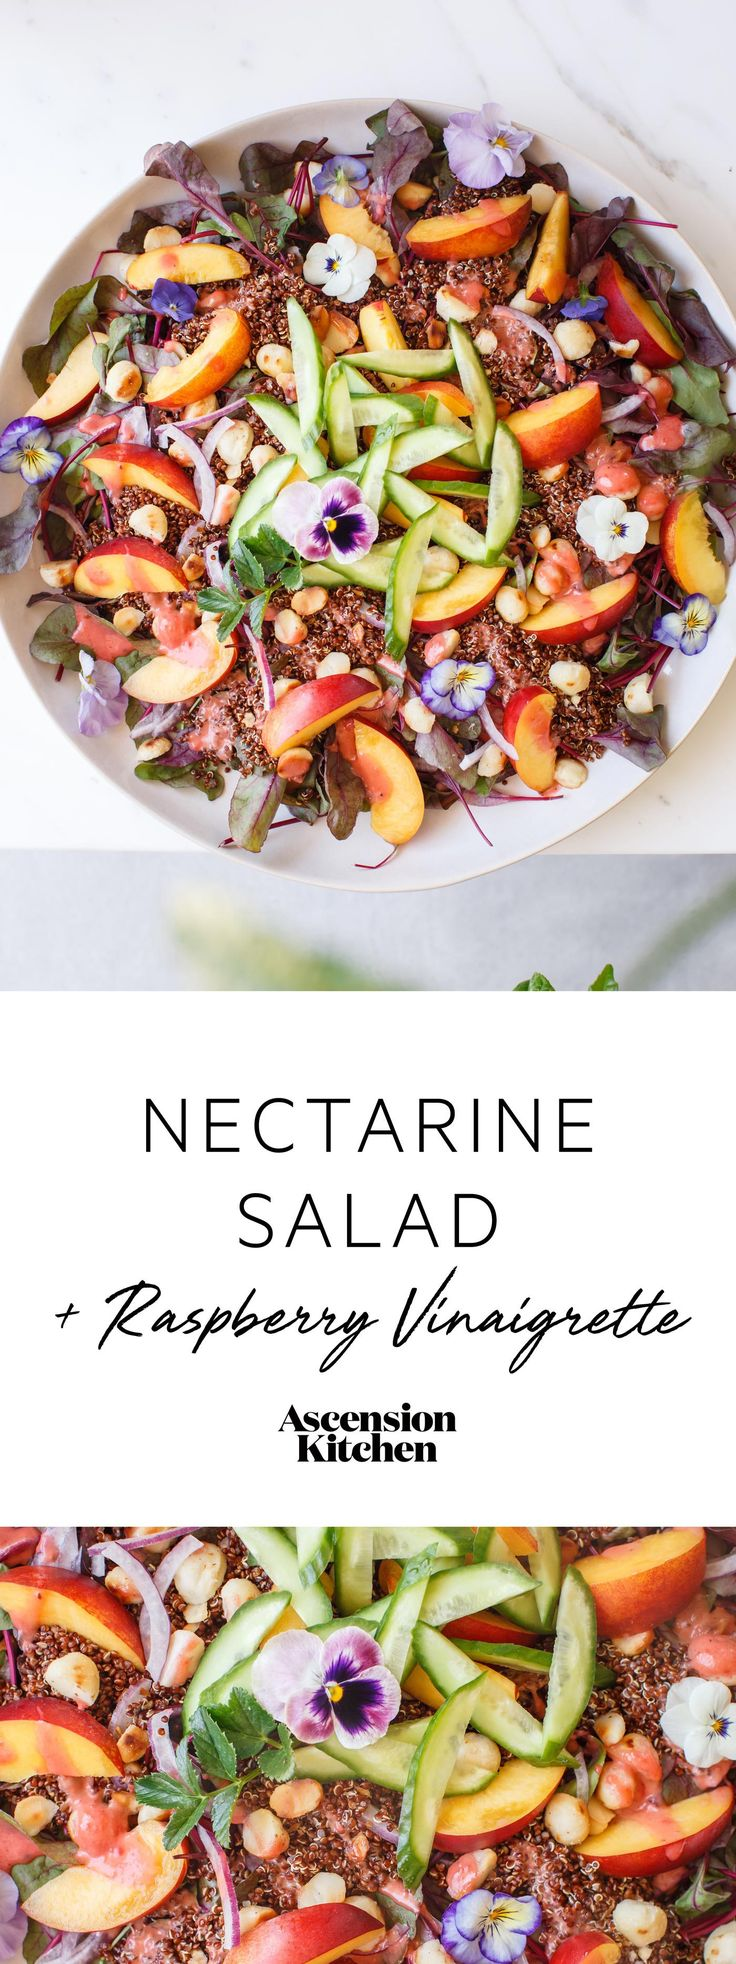 A simple Summer Nectarine Salad with Raspberry Balsamic Vinaigrette. Naturally gluten free, plant-based.   Easy summer salad recipe, vegan salad recipe, gluten free salad recipe, nectarine salad, raspberry dressing. #vegansalad #summersalad  // Repin to your own inspiration board! //